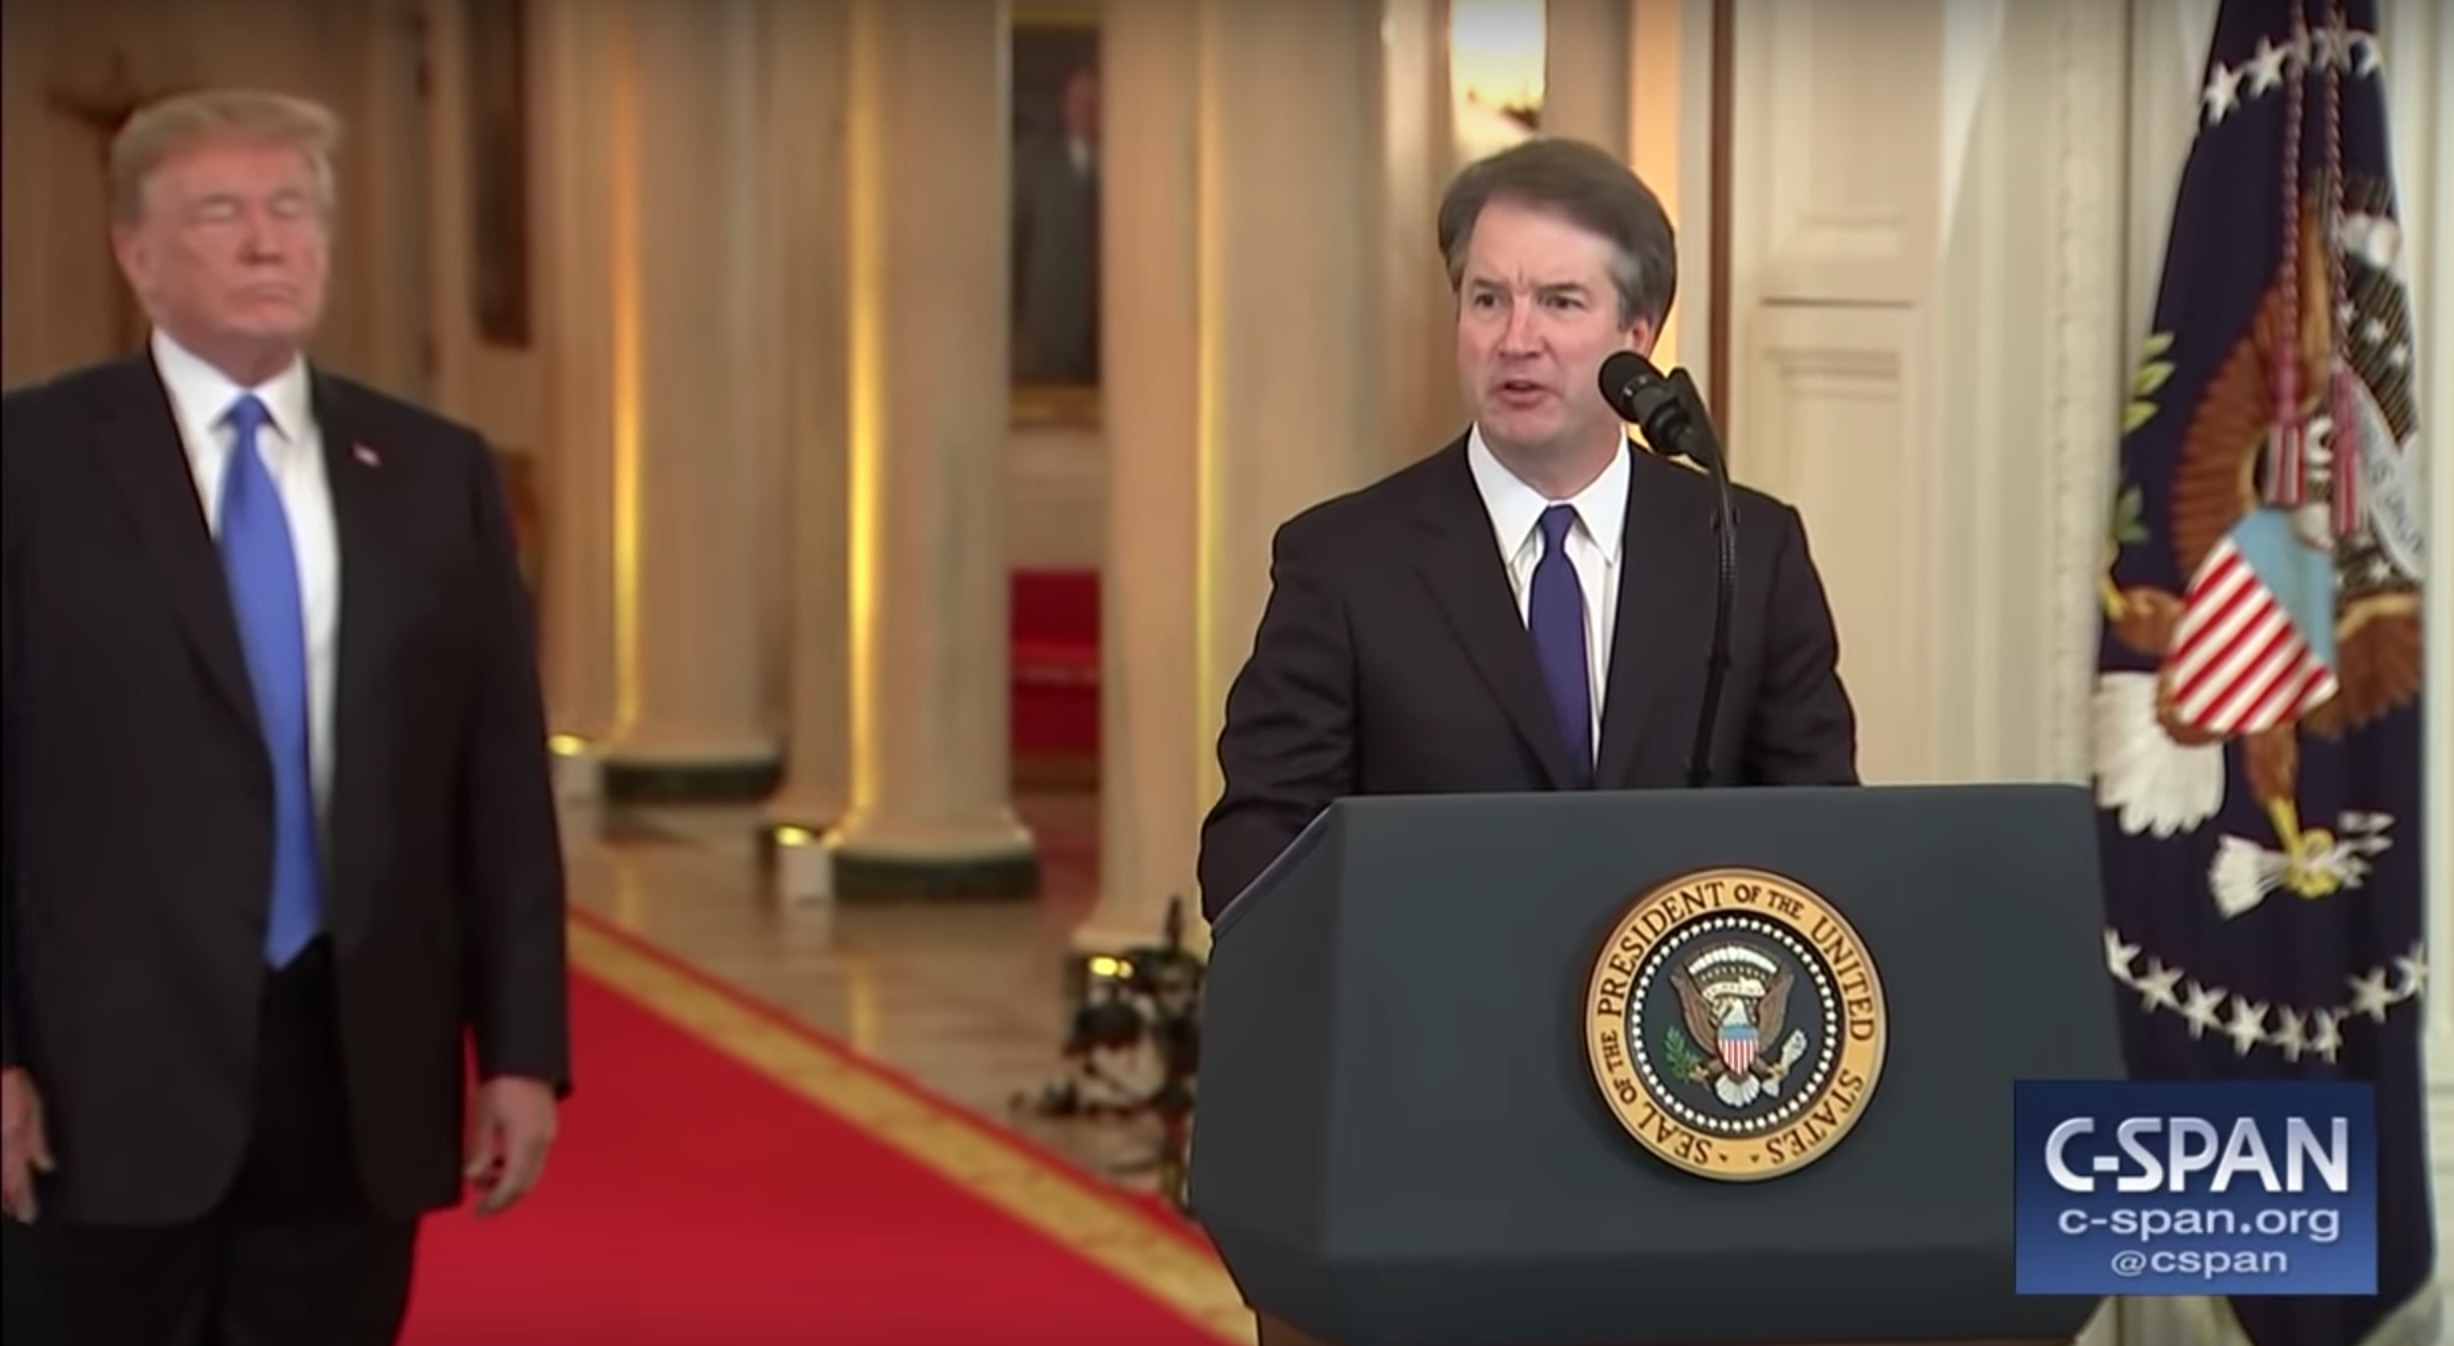 Screenshot of a middle-aged man wearing a suit and tie, speaking from a podium at the White House, with Donald Trump to his right, in background